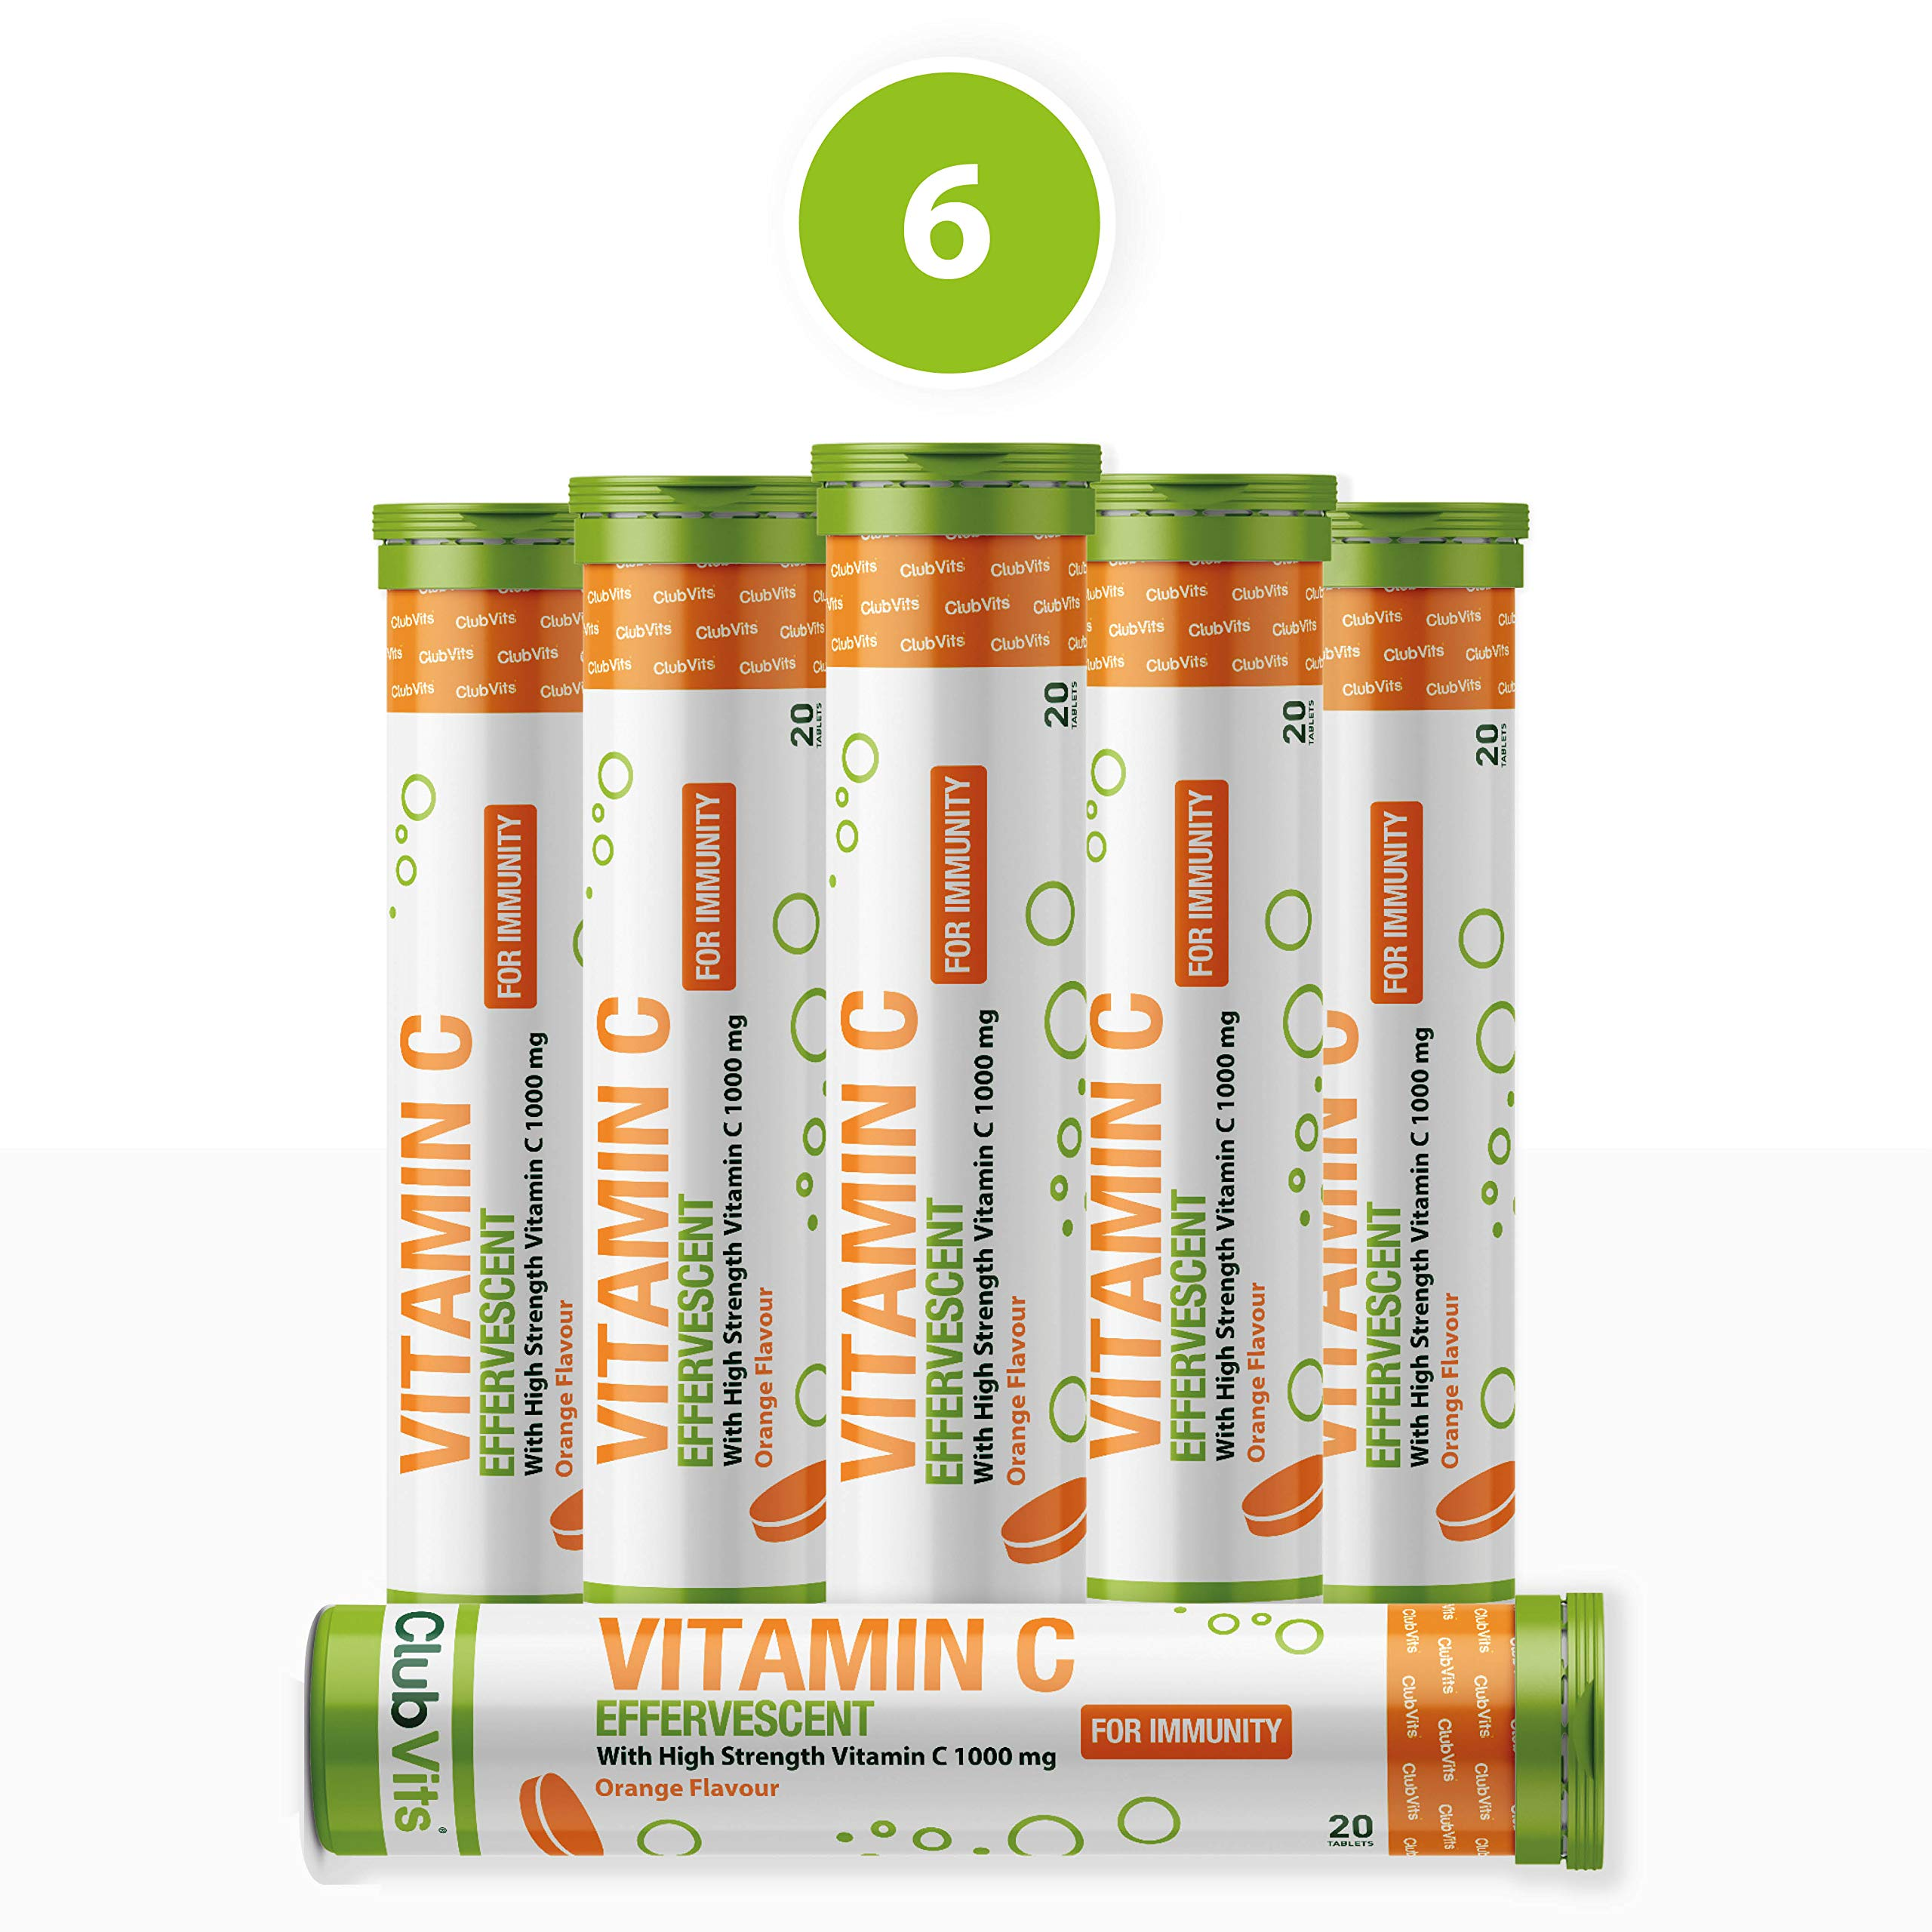 Vitamin C 1000mg 120 Effervescent Orange Flavoured Tablets   High Strength   Supports Immune Health & Colds   20 x 6 Tubes by Club Vits